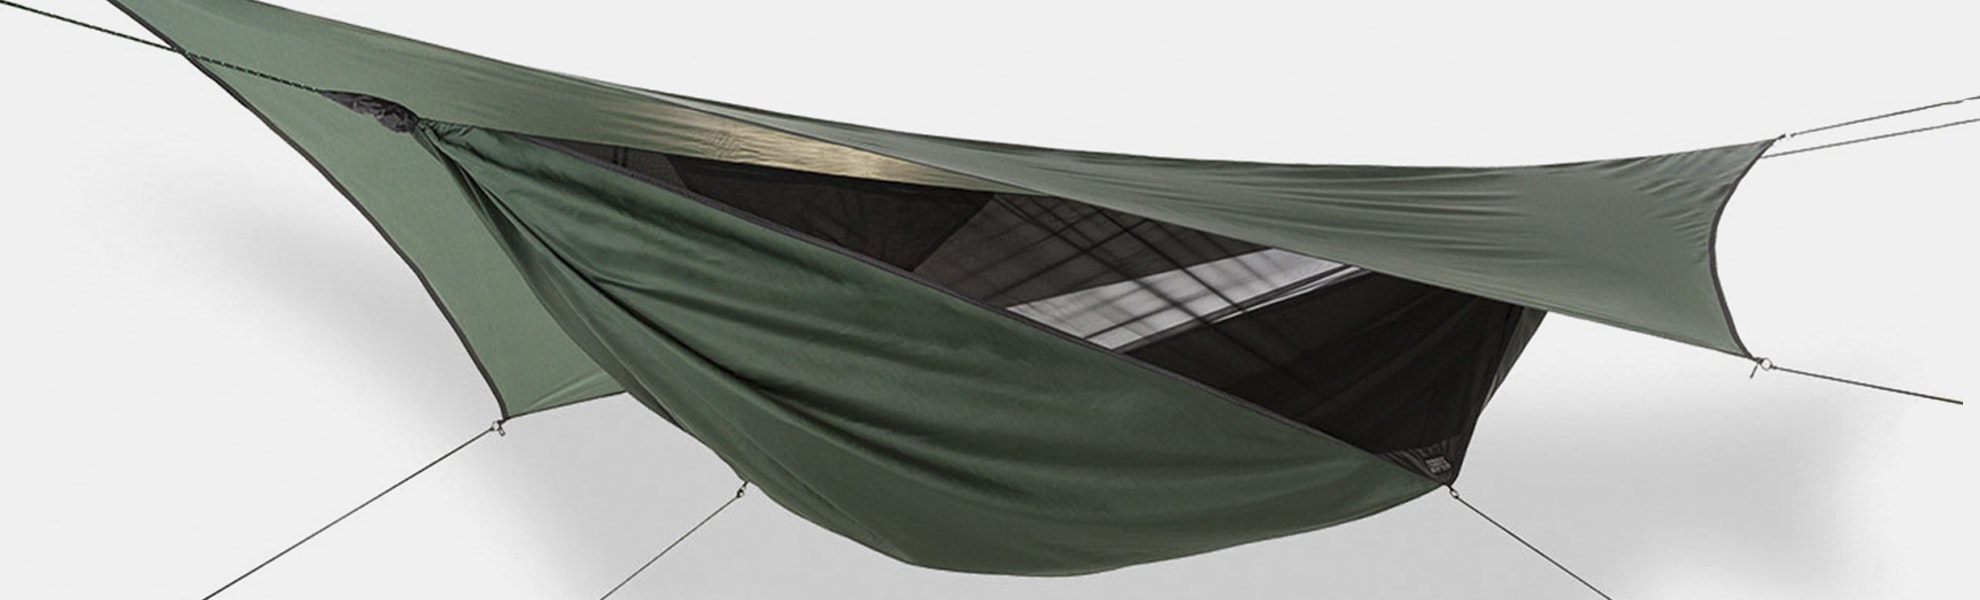 Medium image of hennessy hammock expedition asymmetrical classic